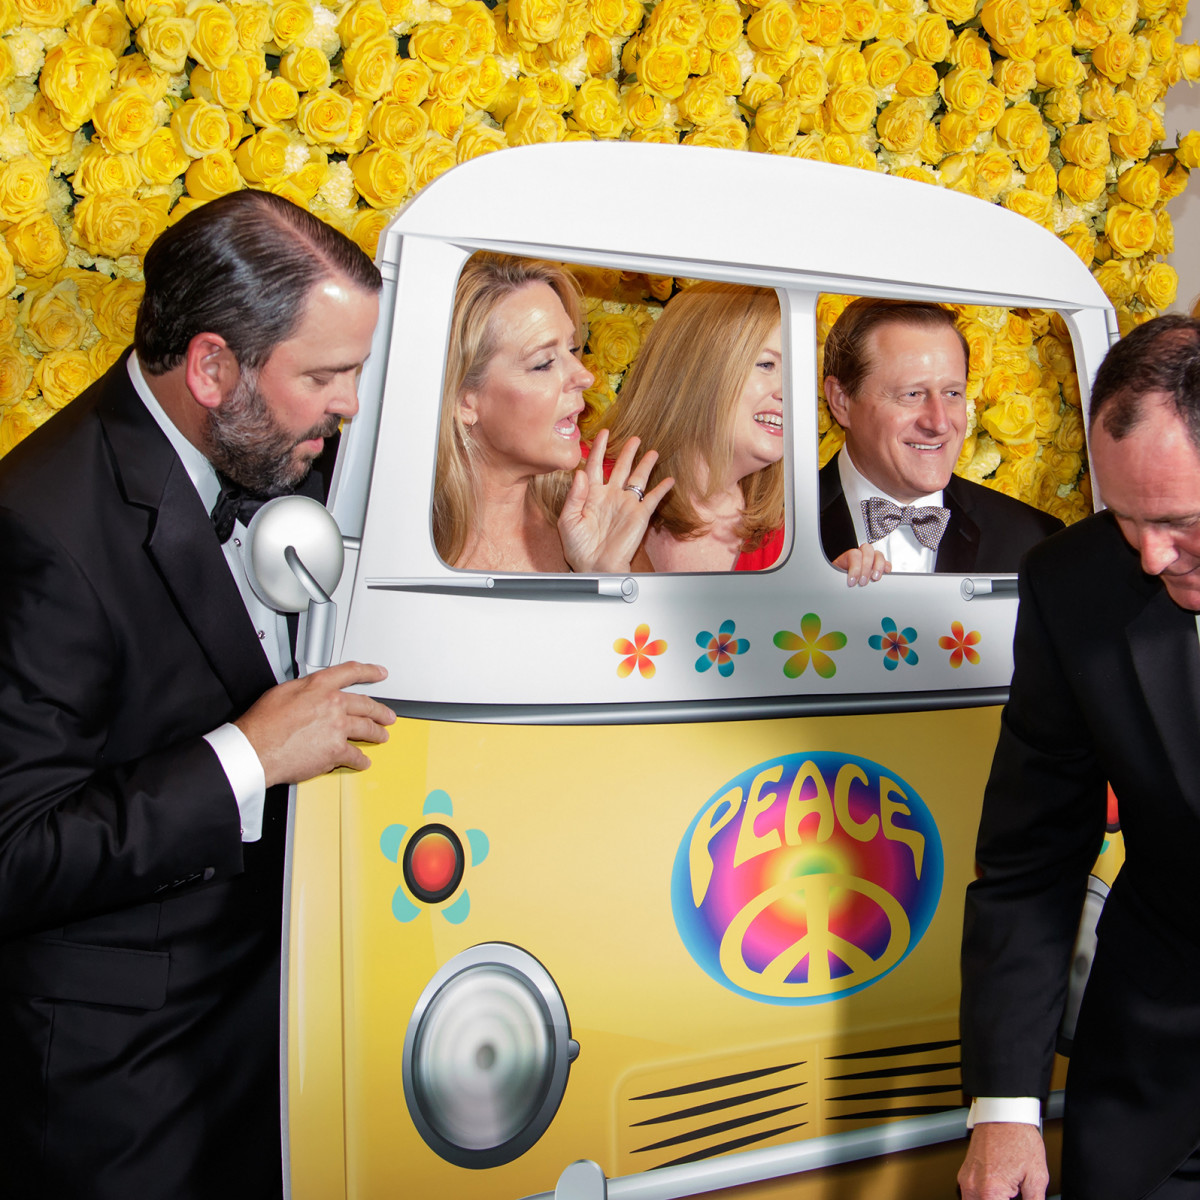 Photo booth at Yellow Rose Gala 2018